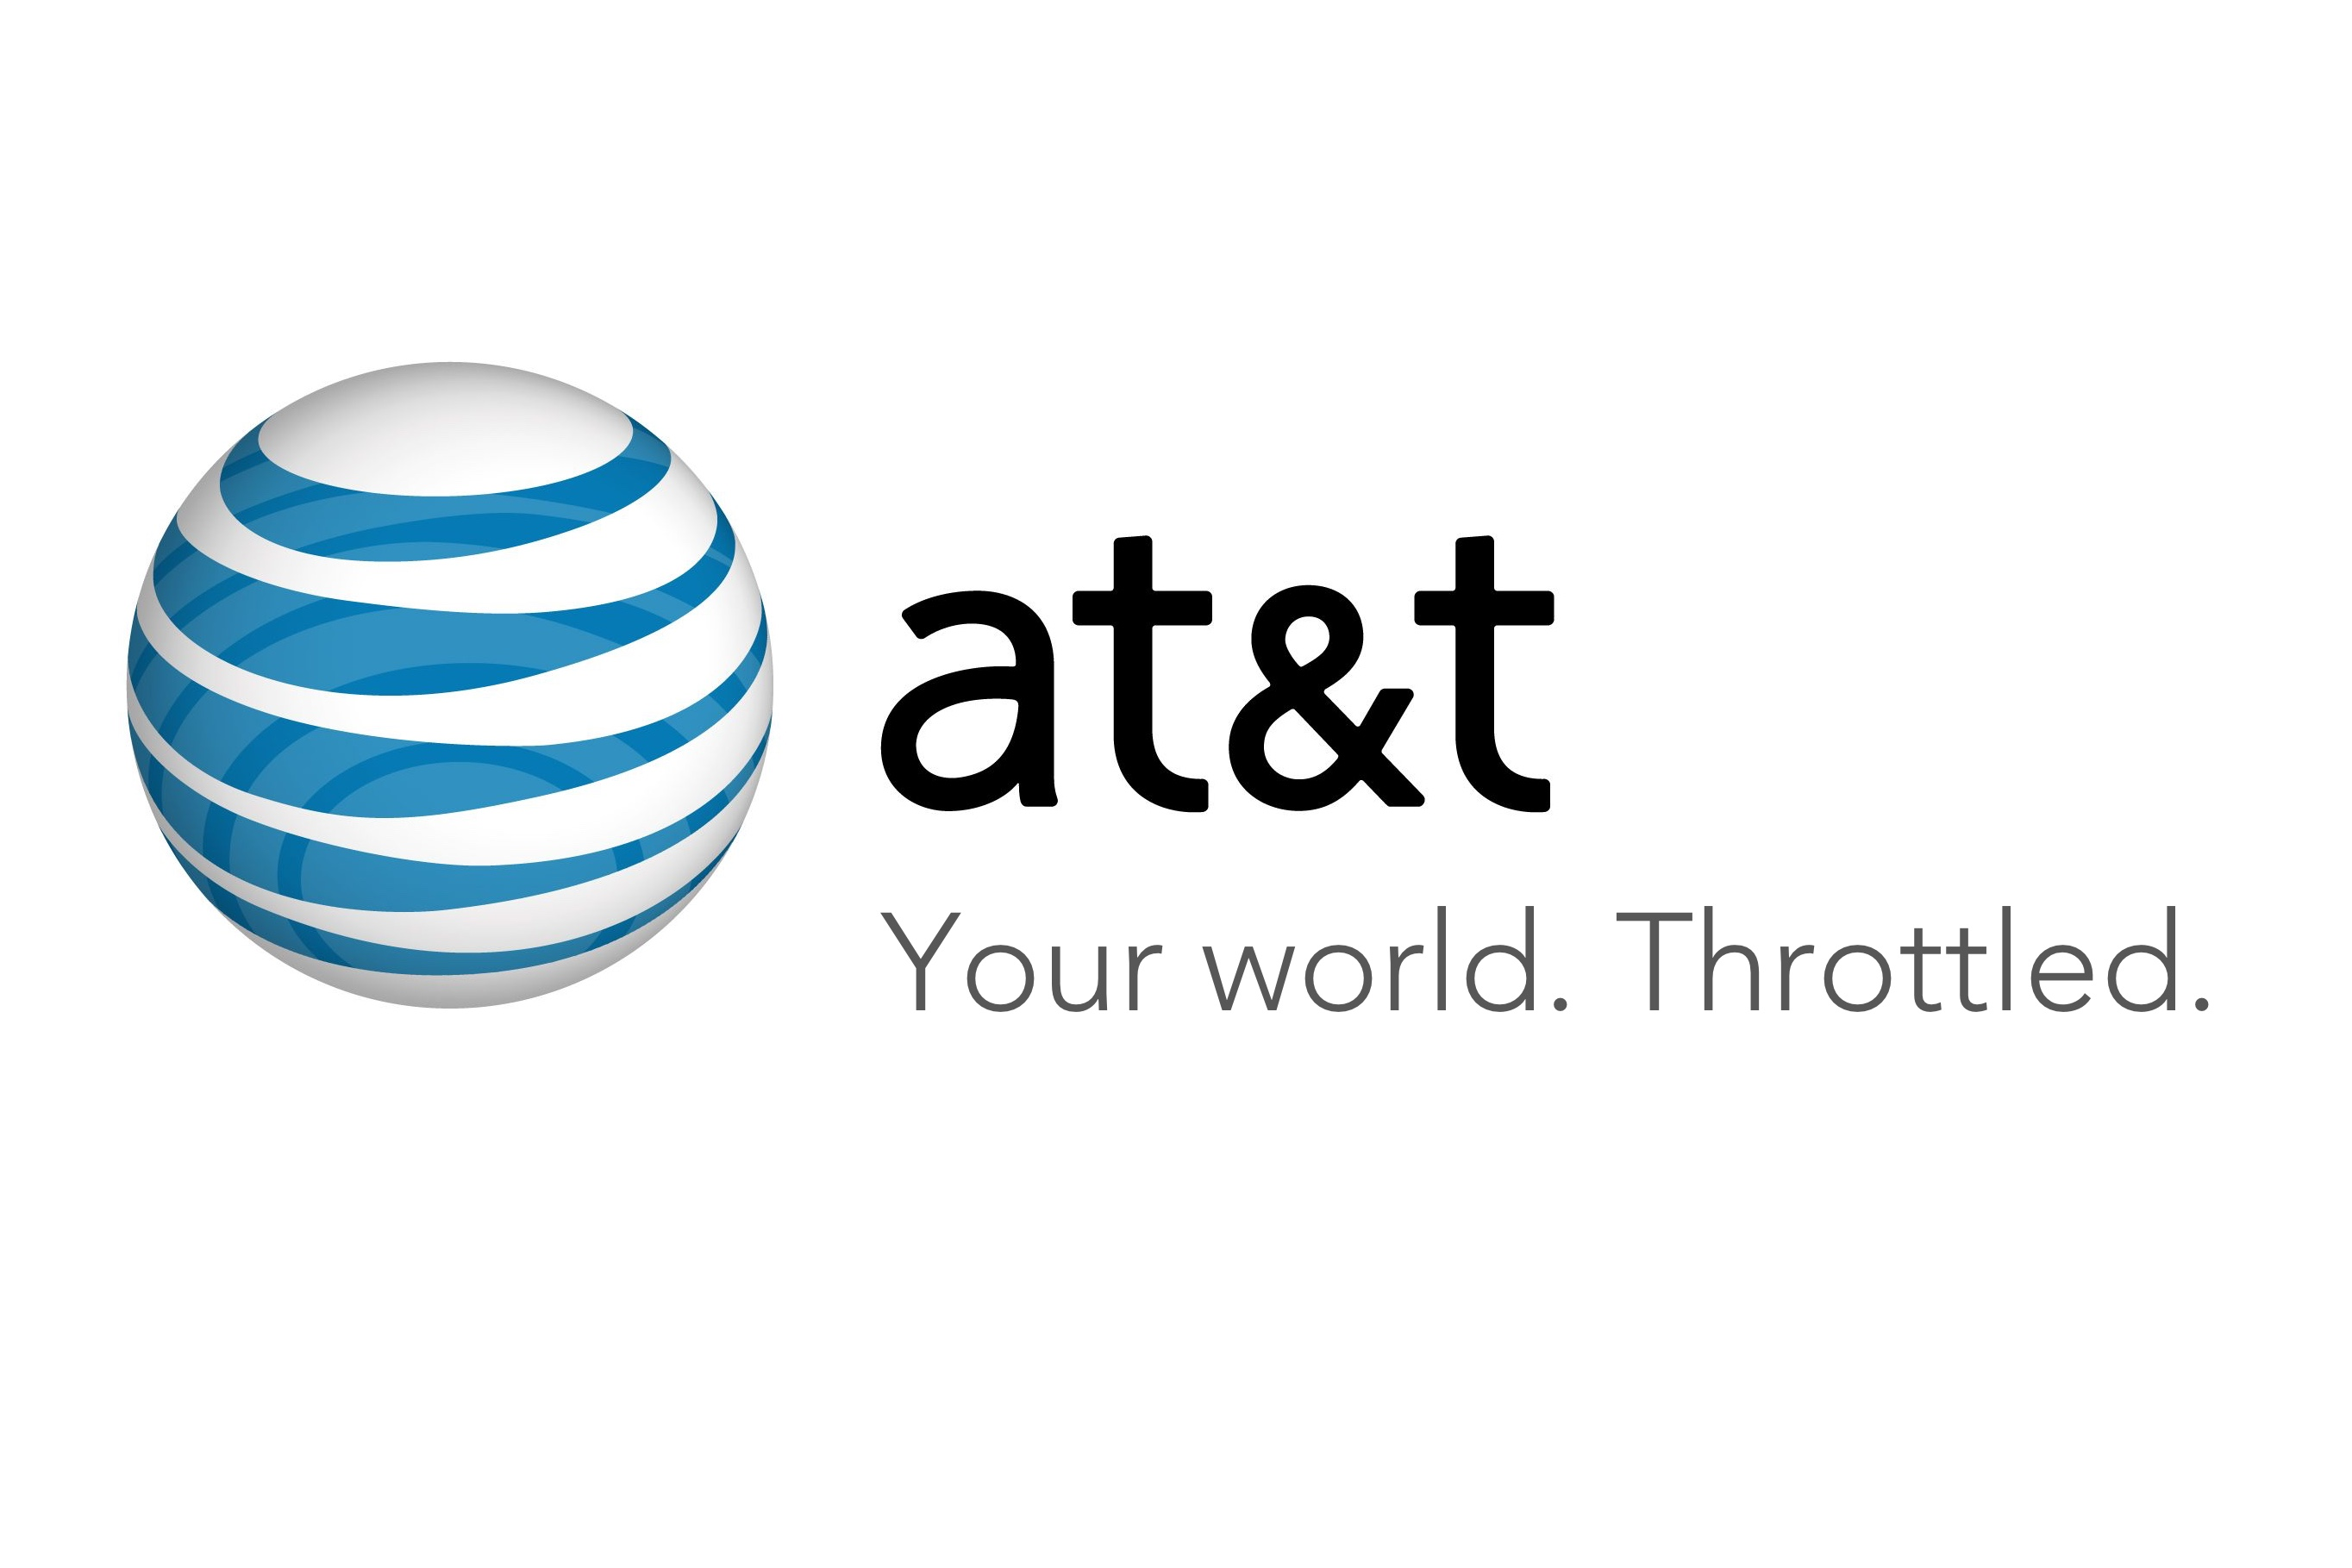 AT&T: Your world. Throttled.